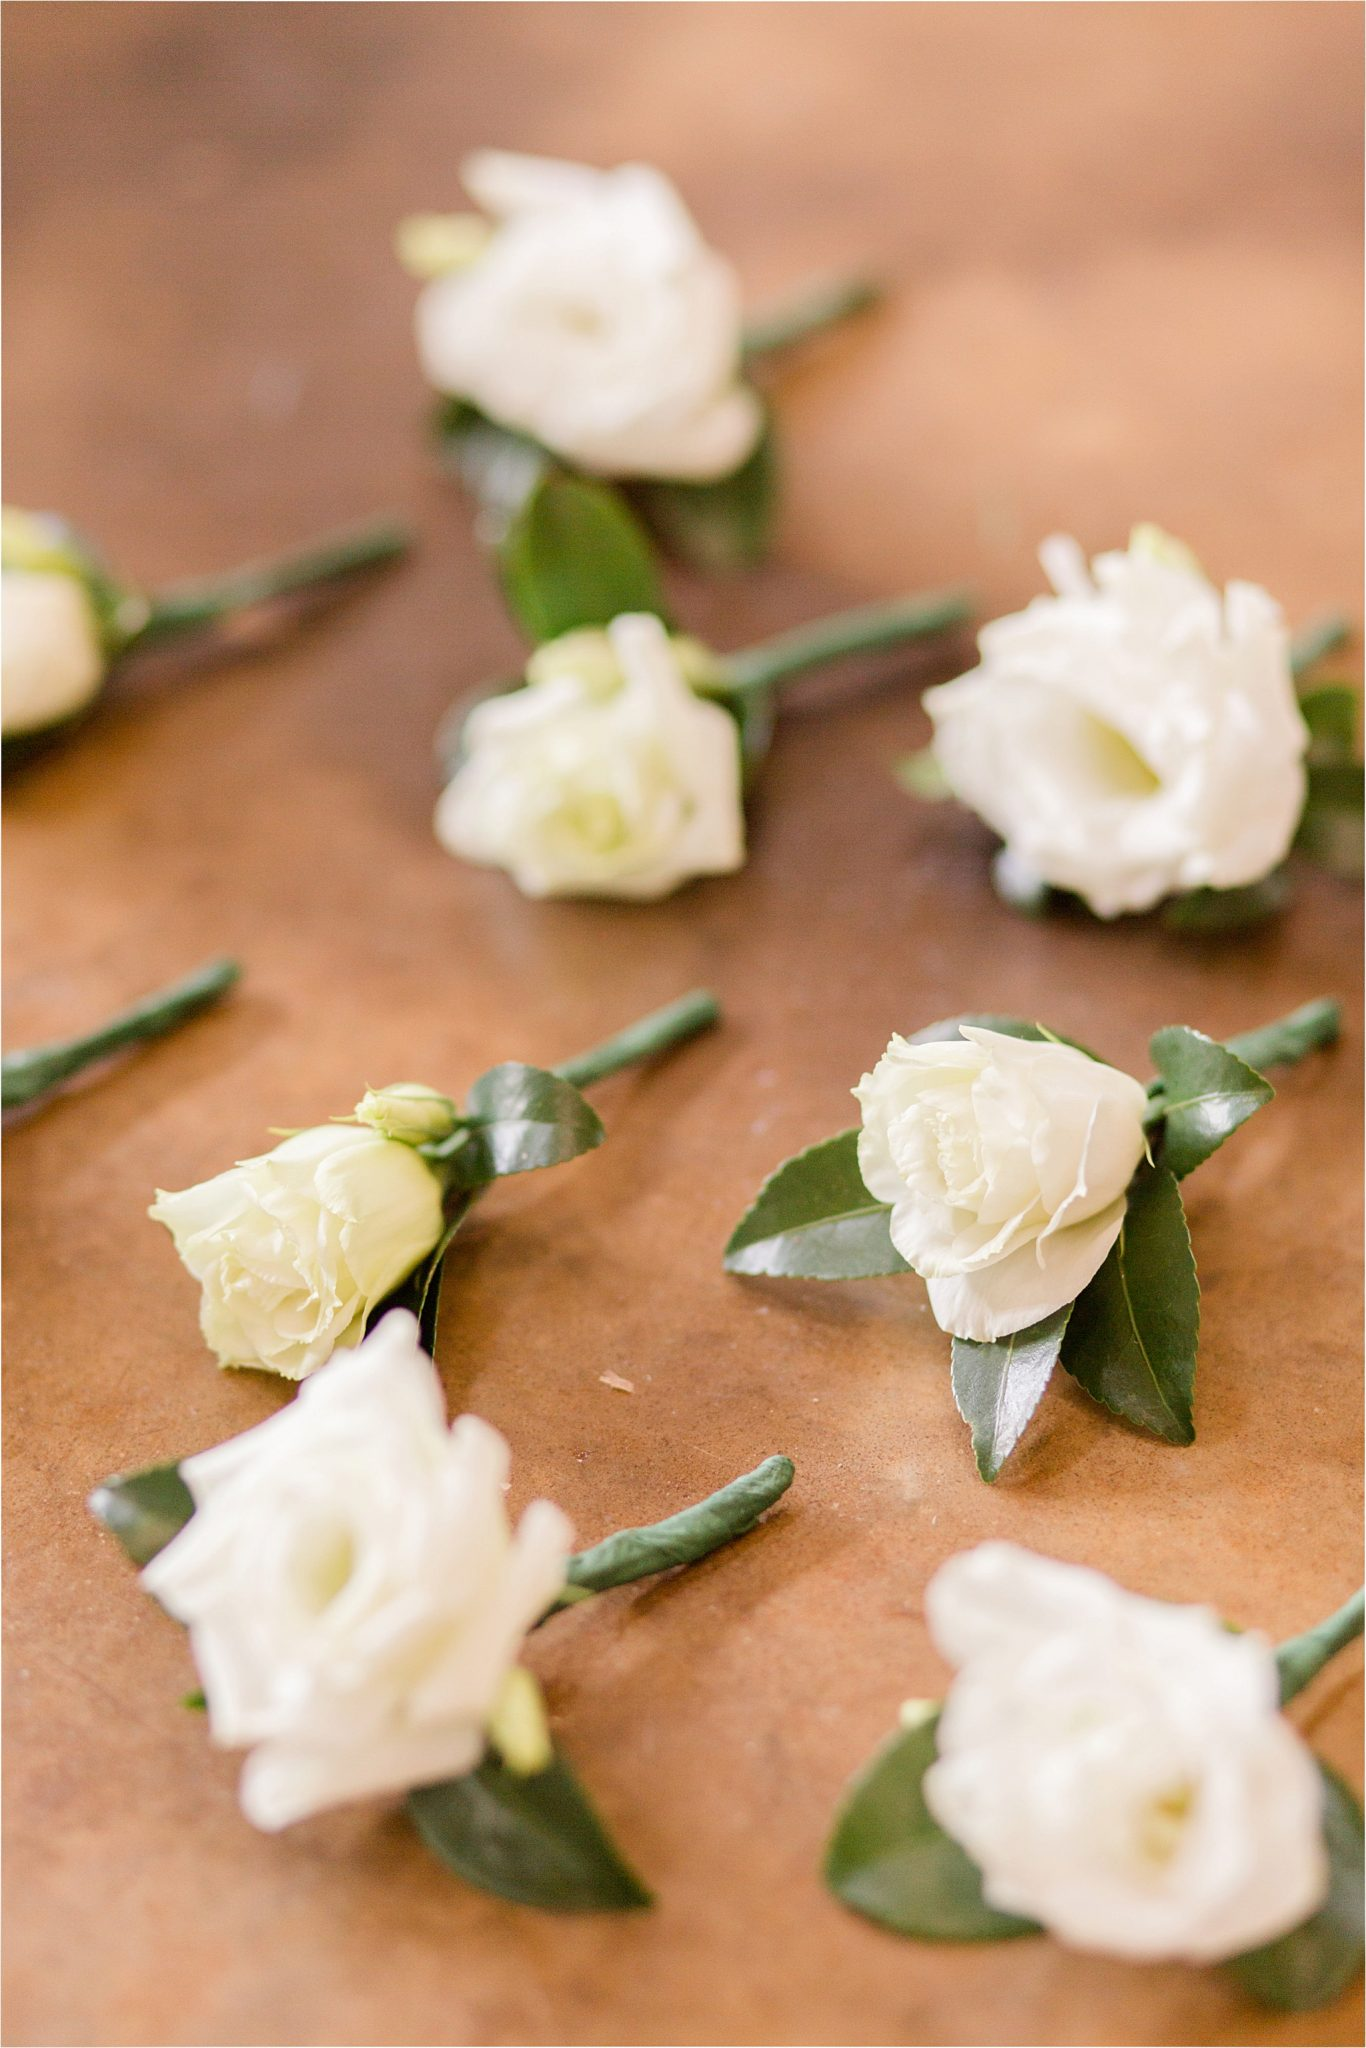 wedding details-corsage-white rose-simple-classic